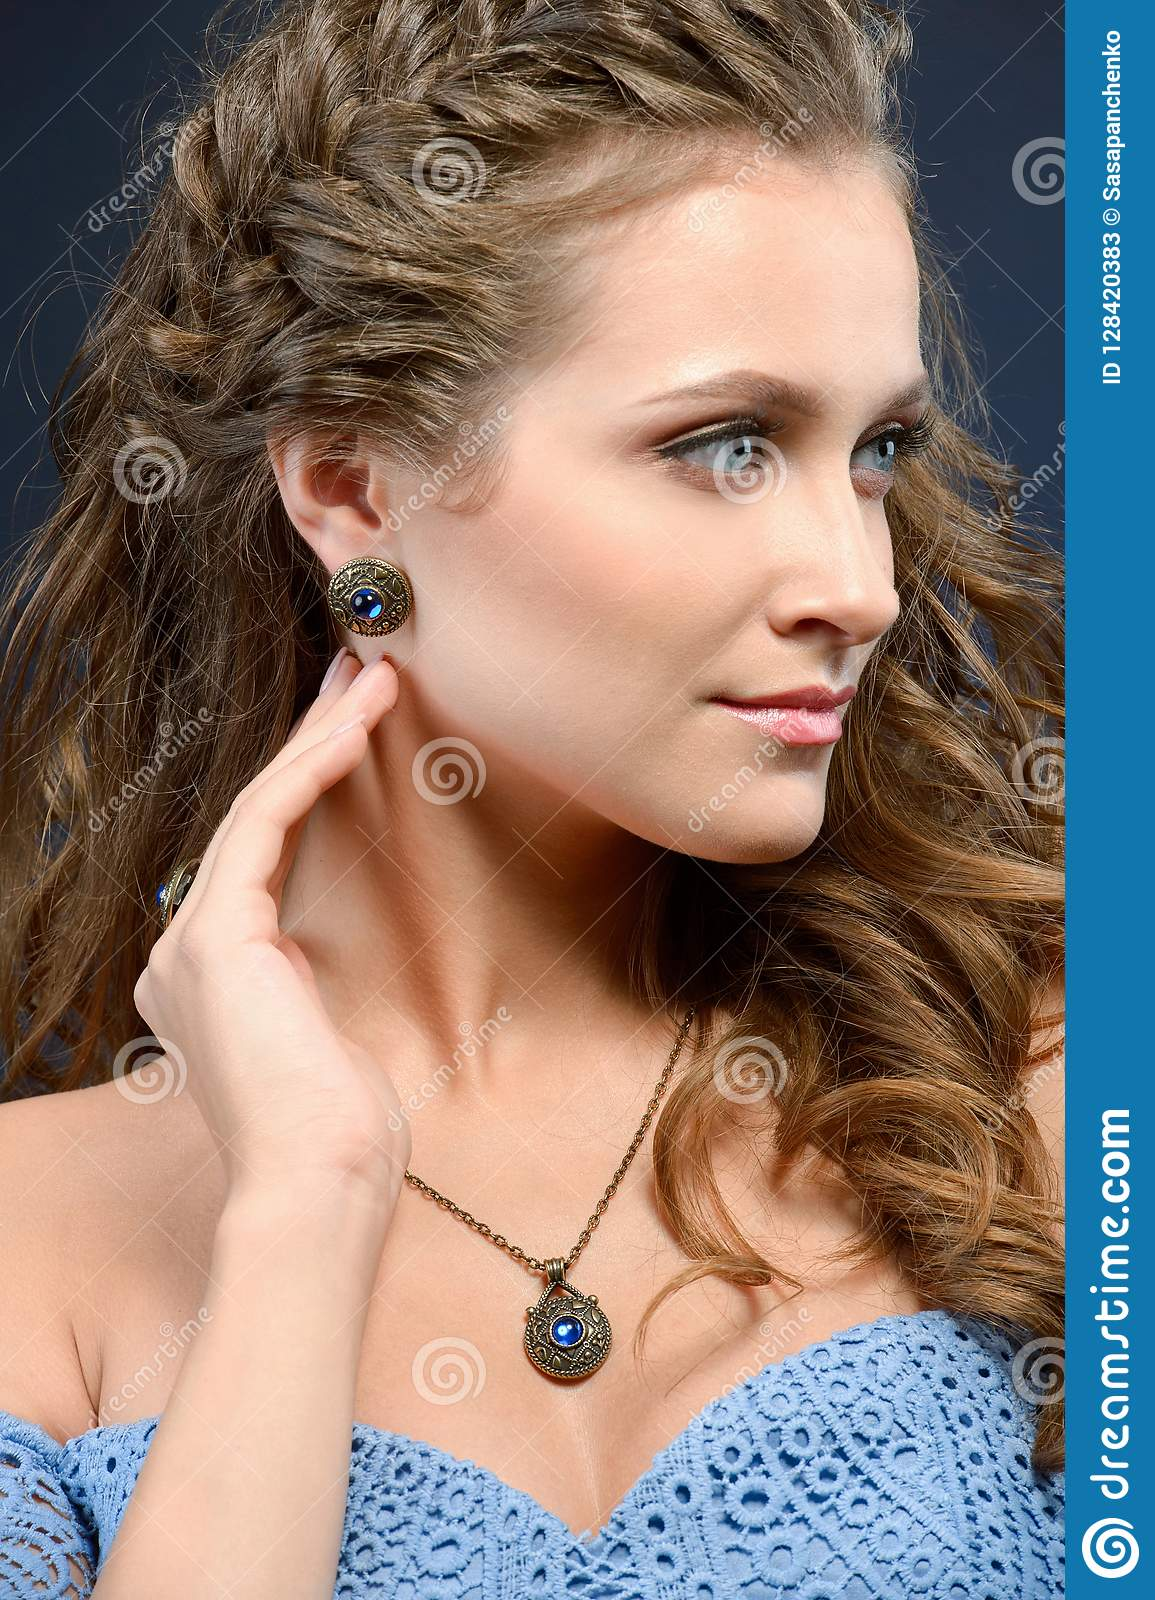 Beautiful brunette model girl with long curly hair and jewelry e